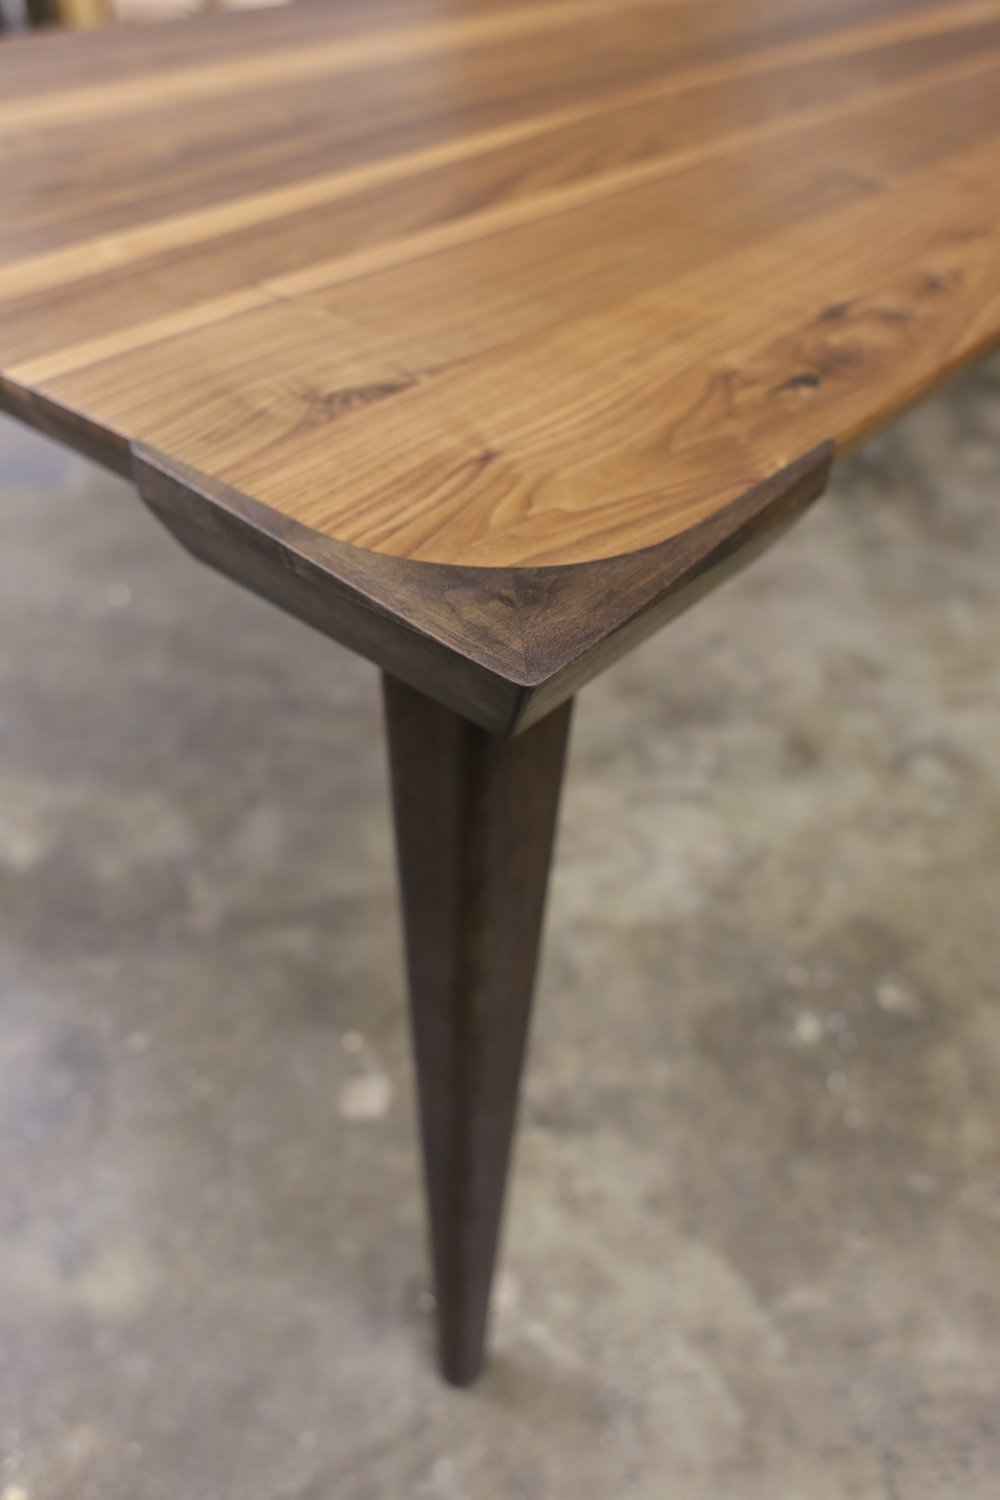 Walnut dining table - Corner detail